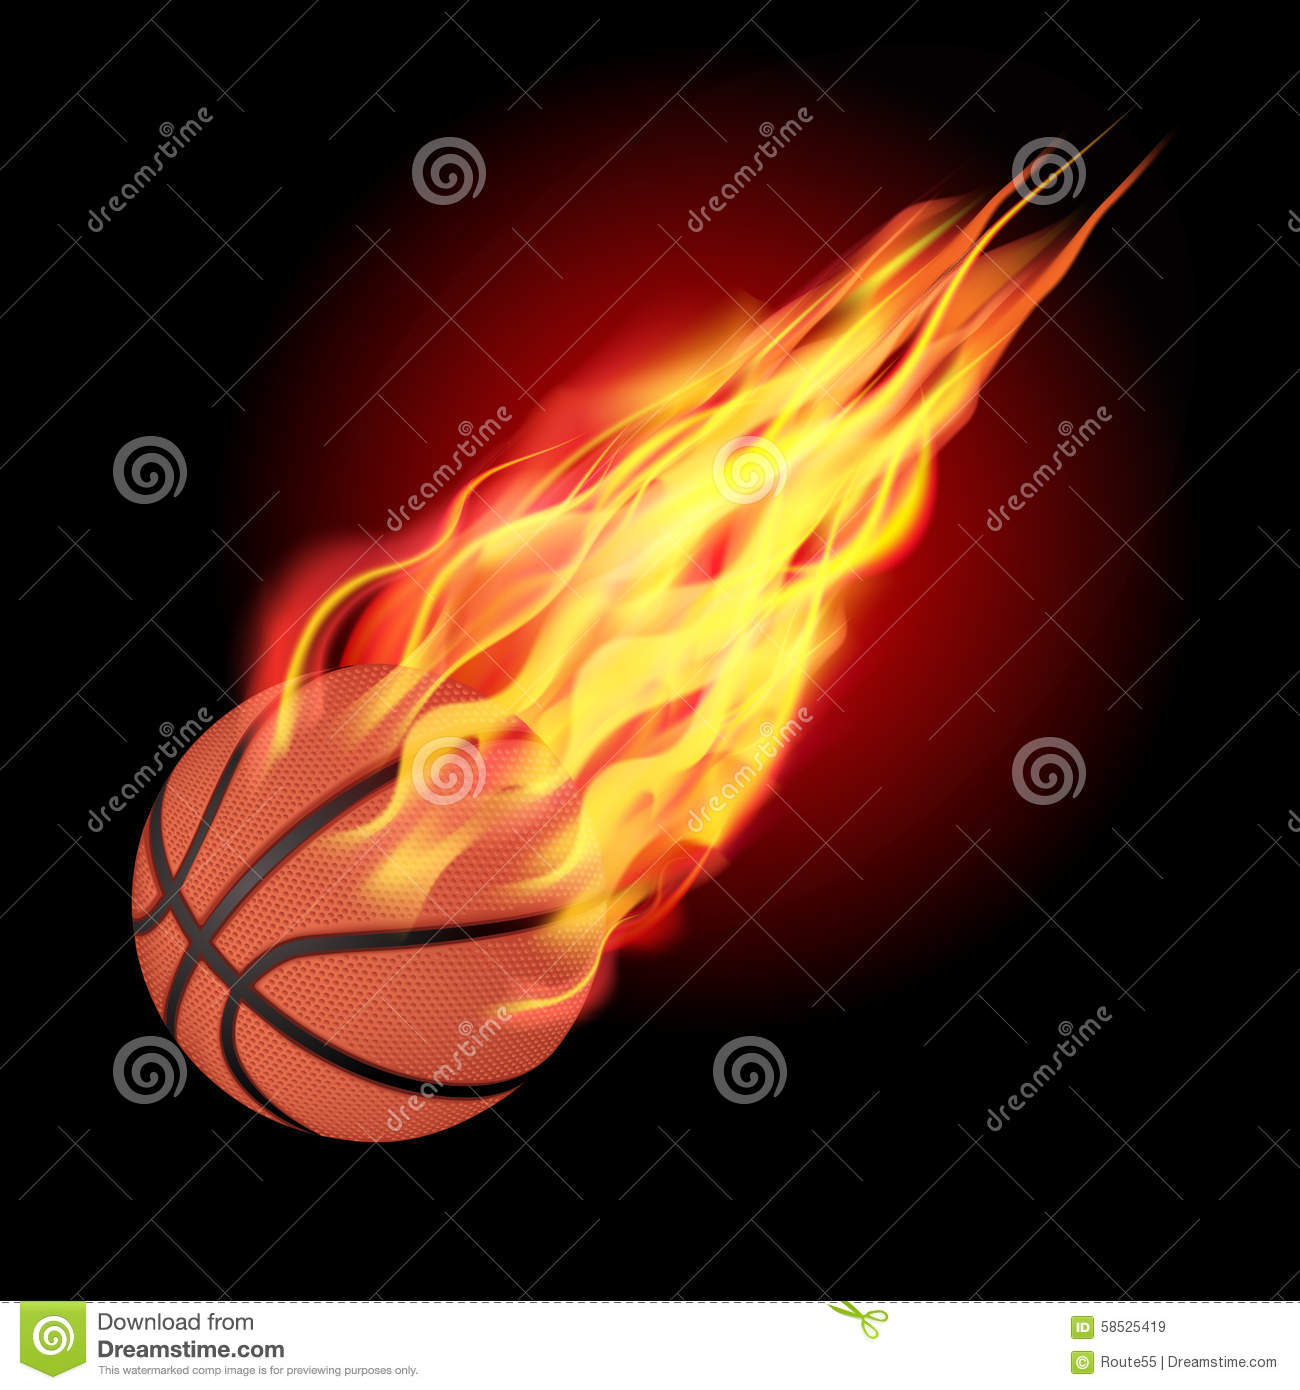 Basketball Ball In Fire Stock Vector - Image: 58525419